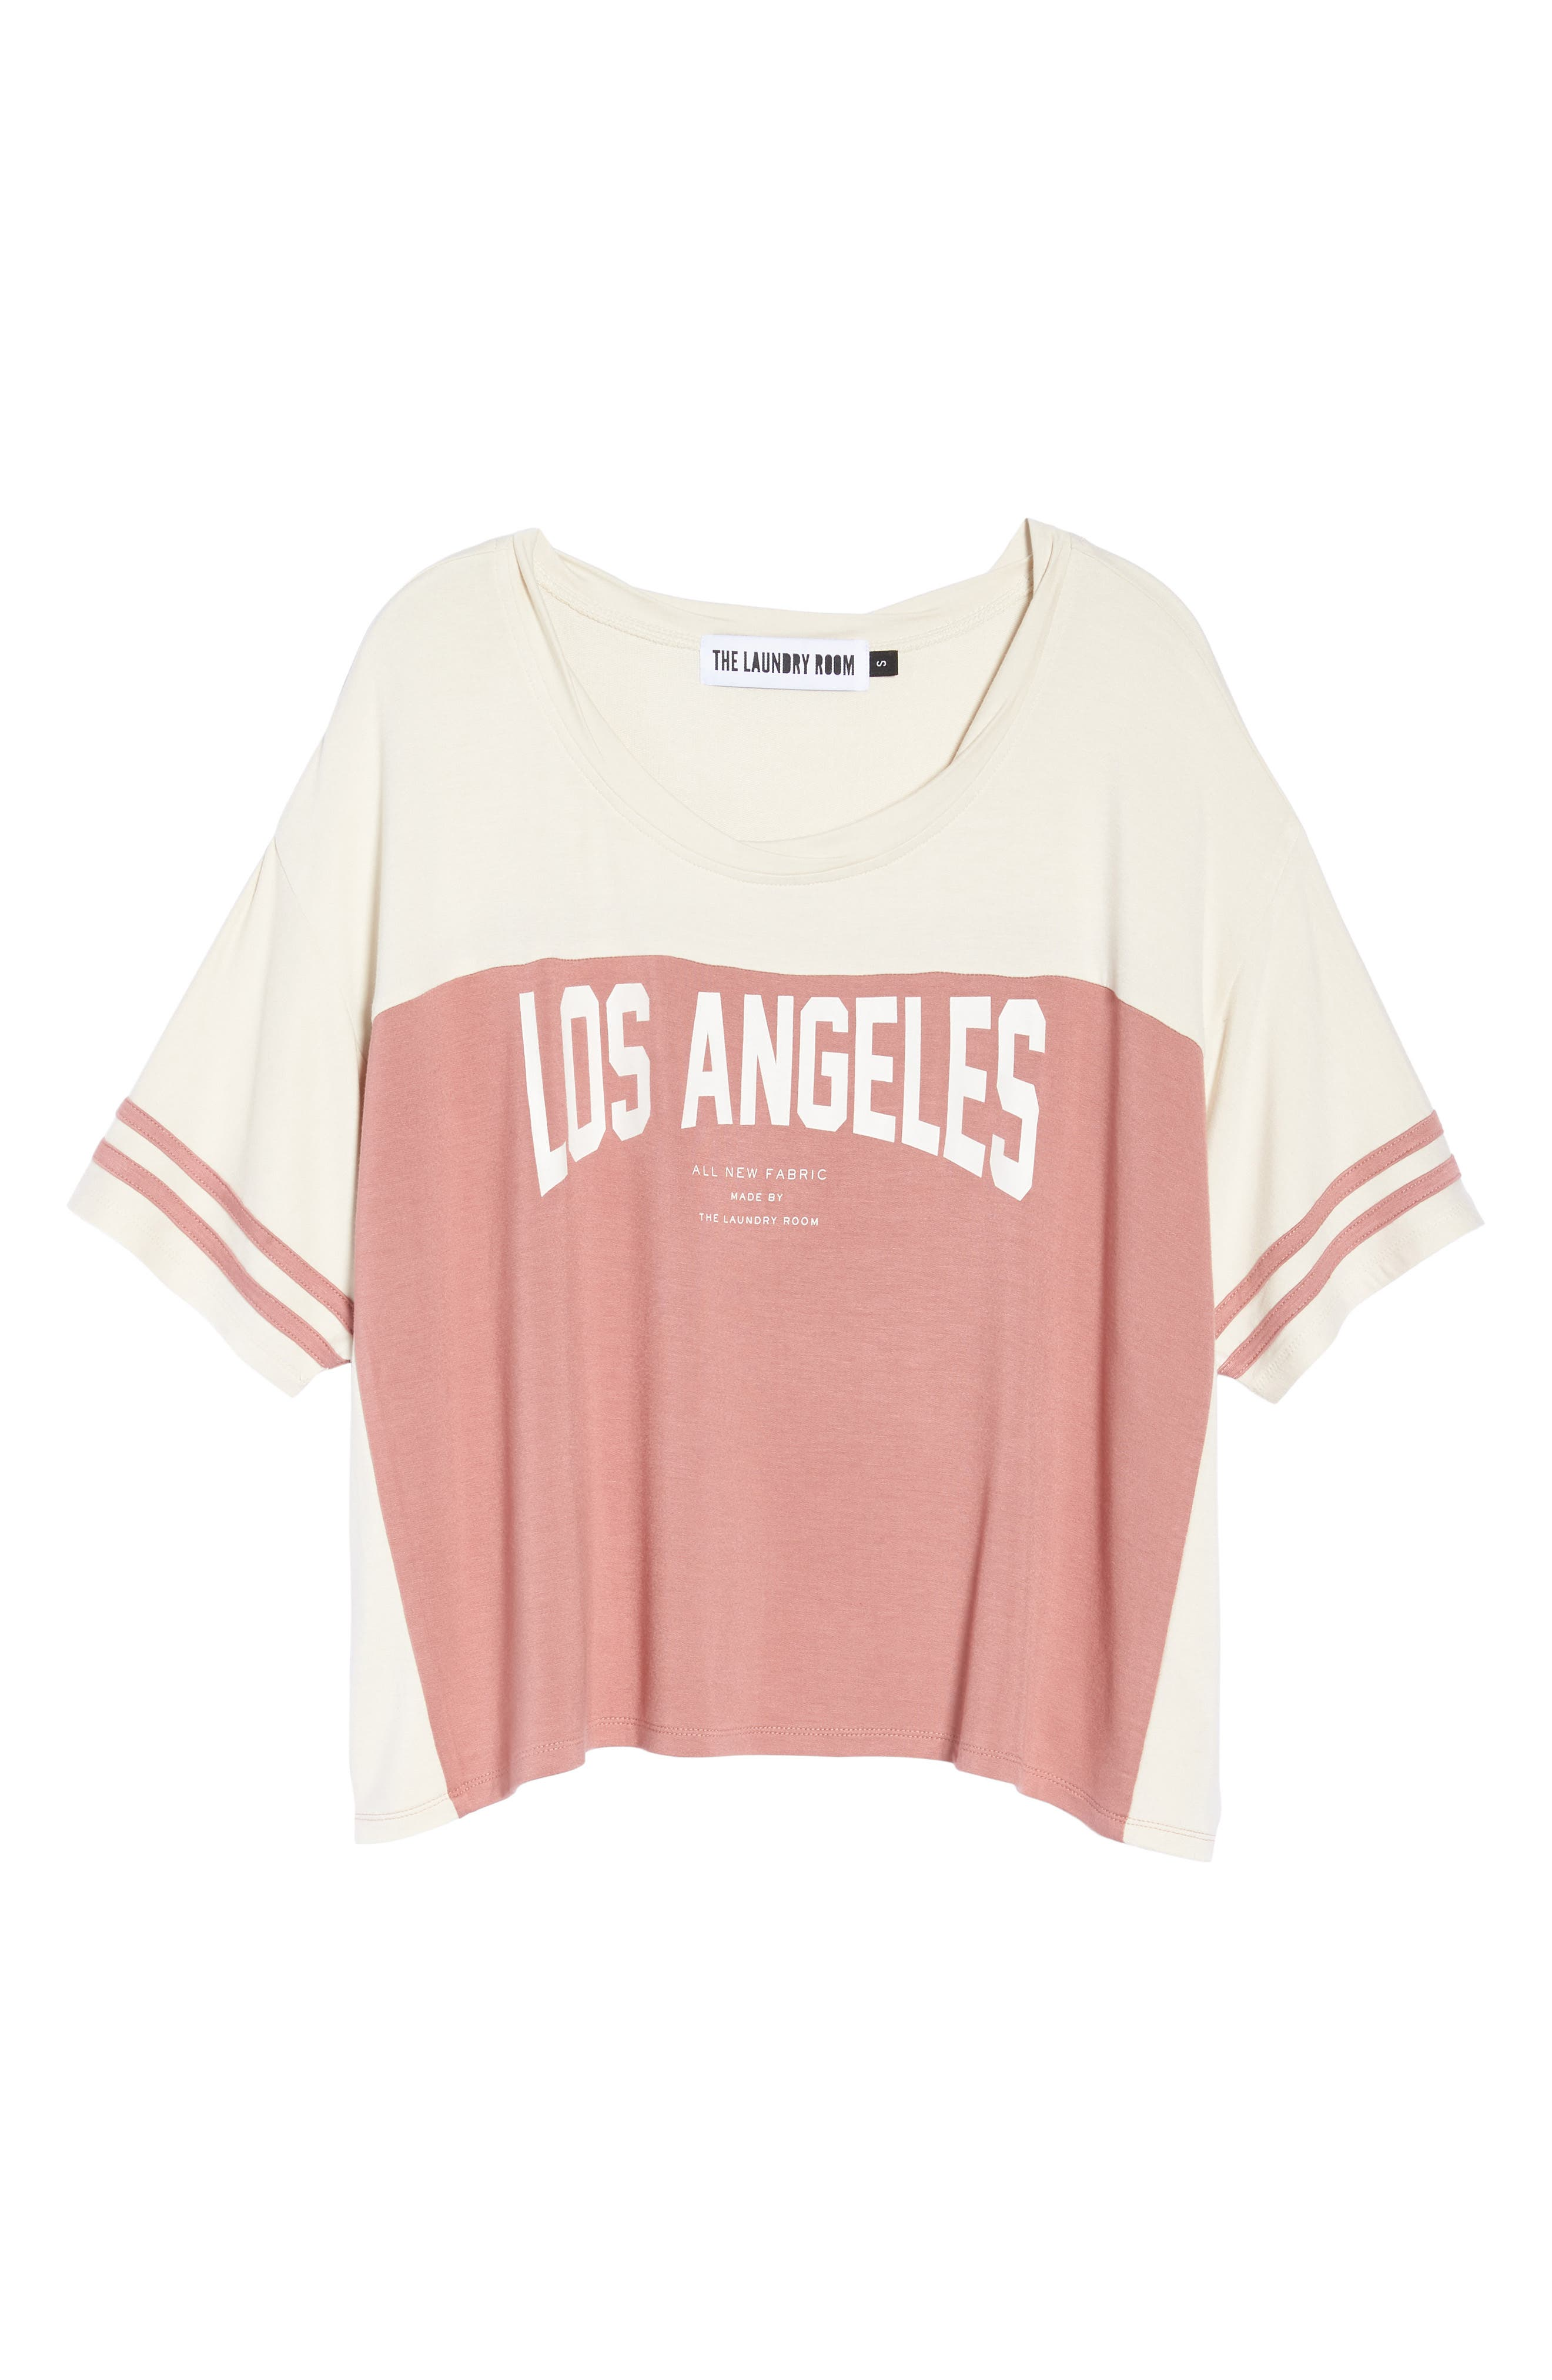 Los Angeles Crop Tee,                             Alternate thumbnail 6, color,                             930